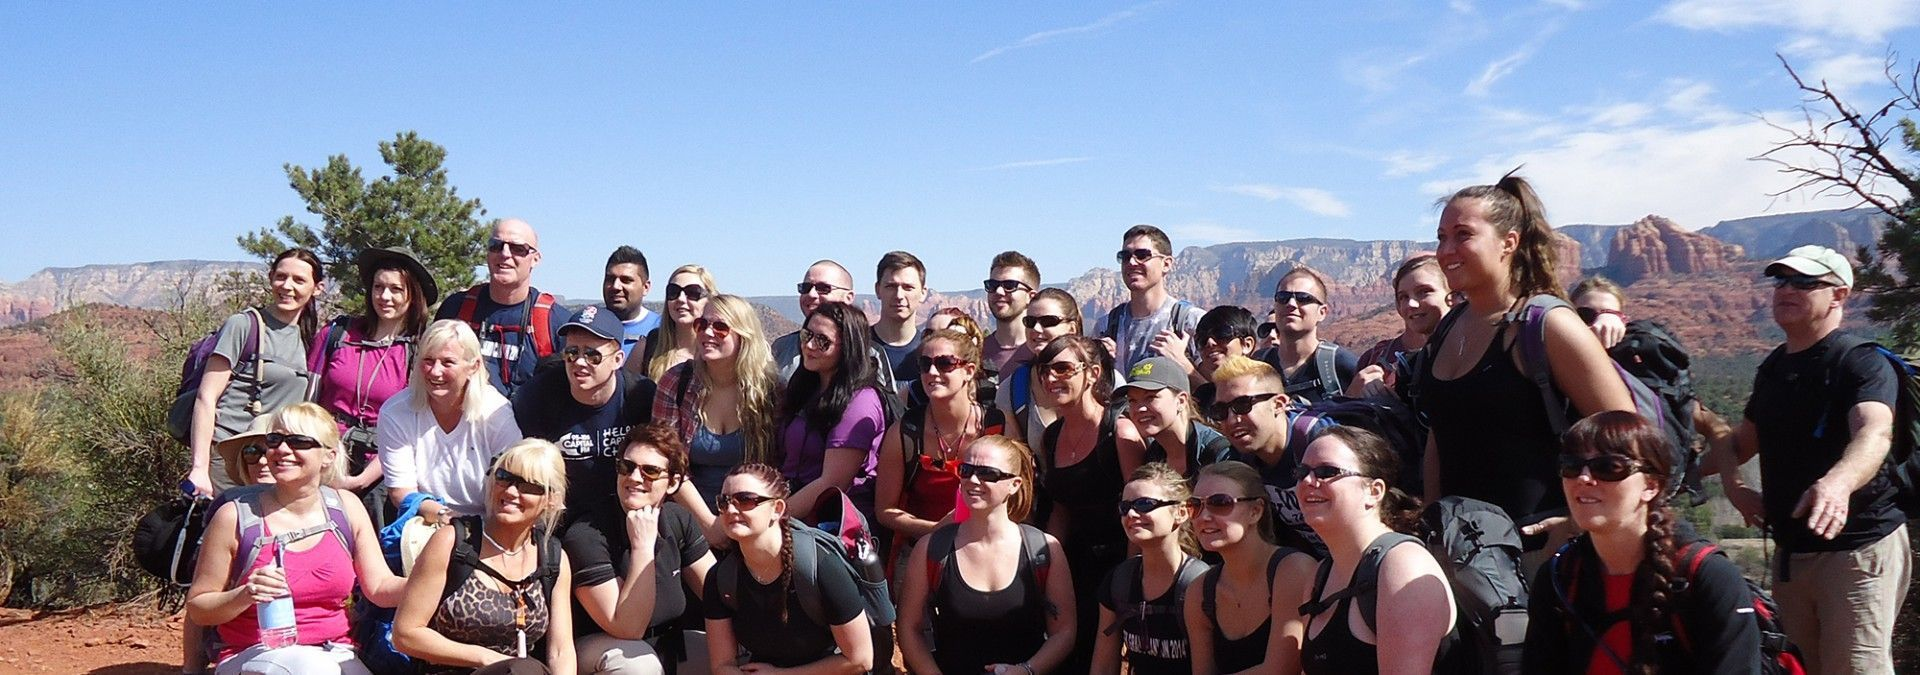 Trekkers_fundraising_Grand_Canyon_USA.jpg